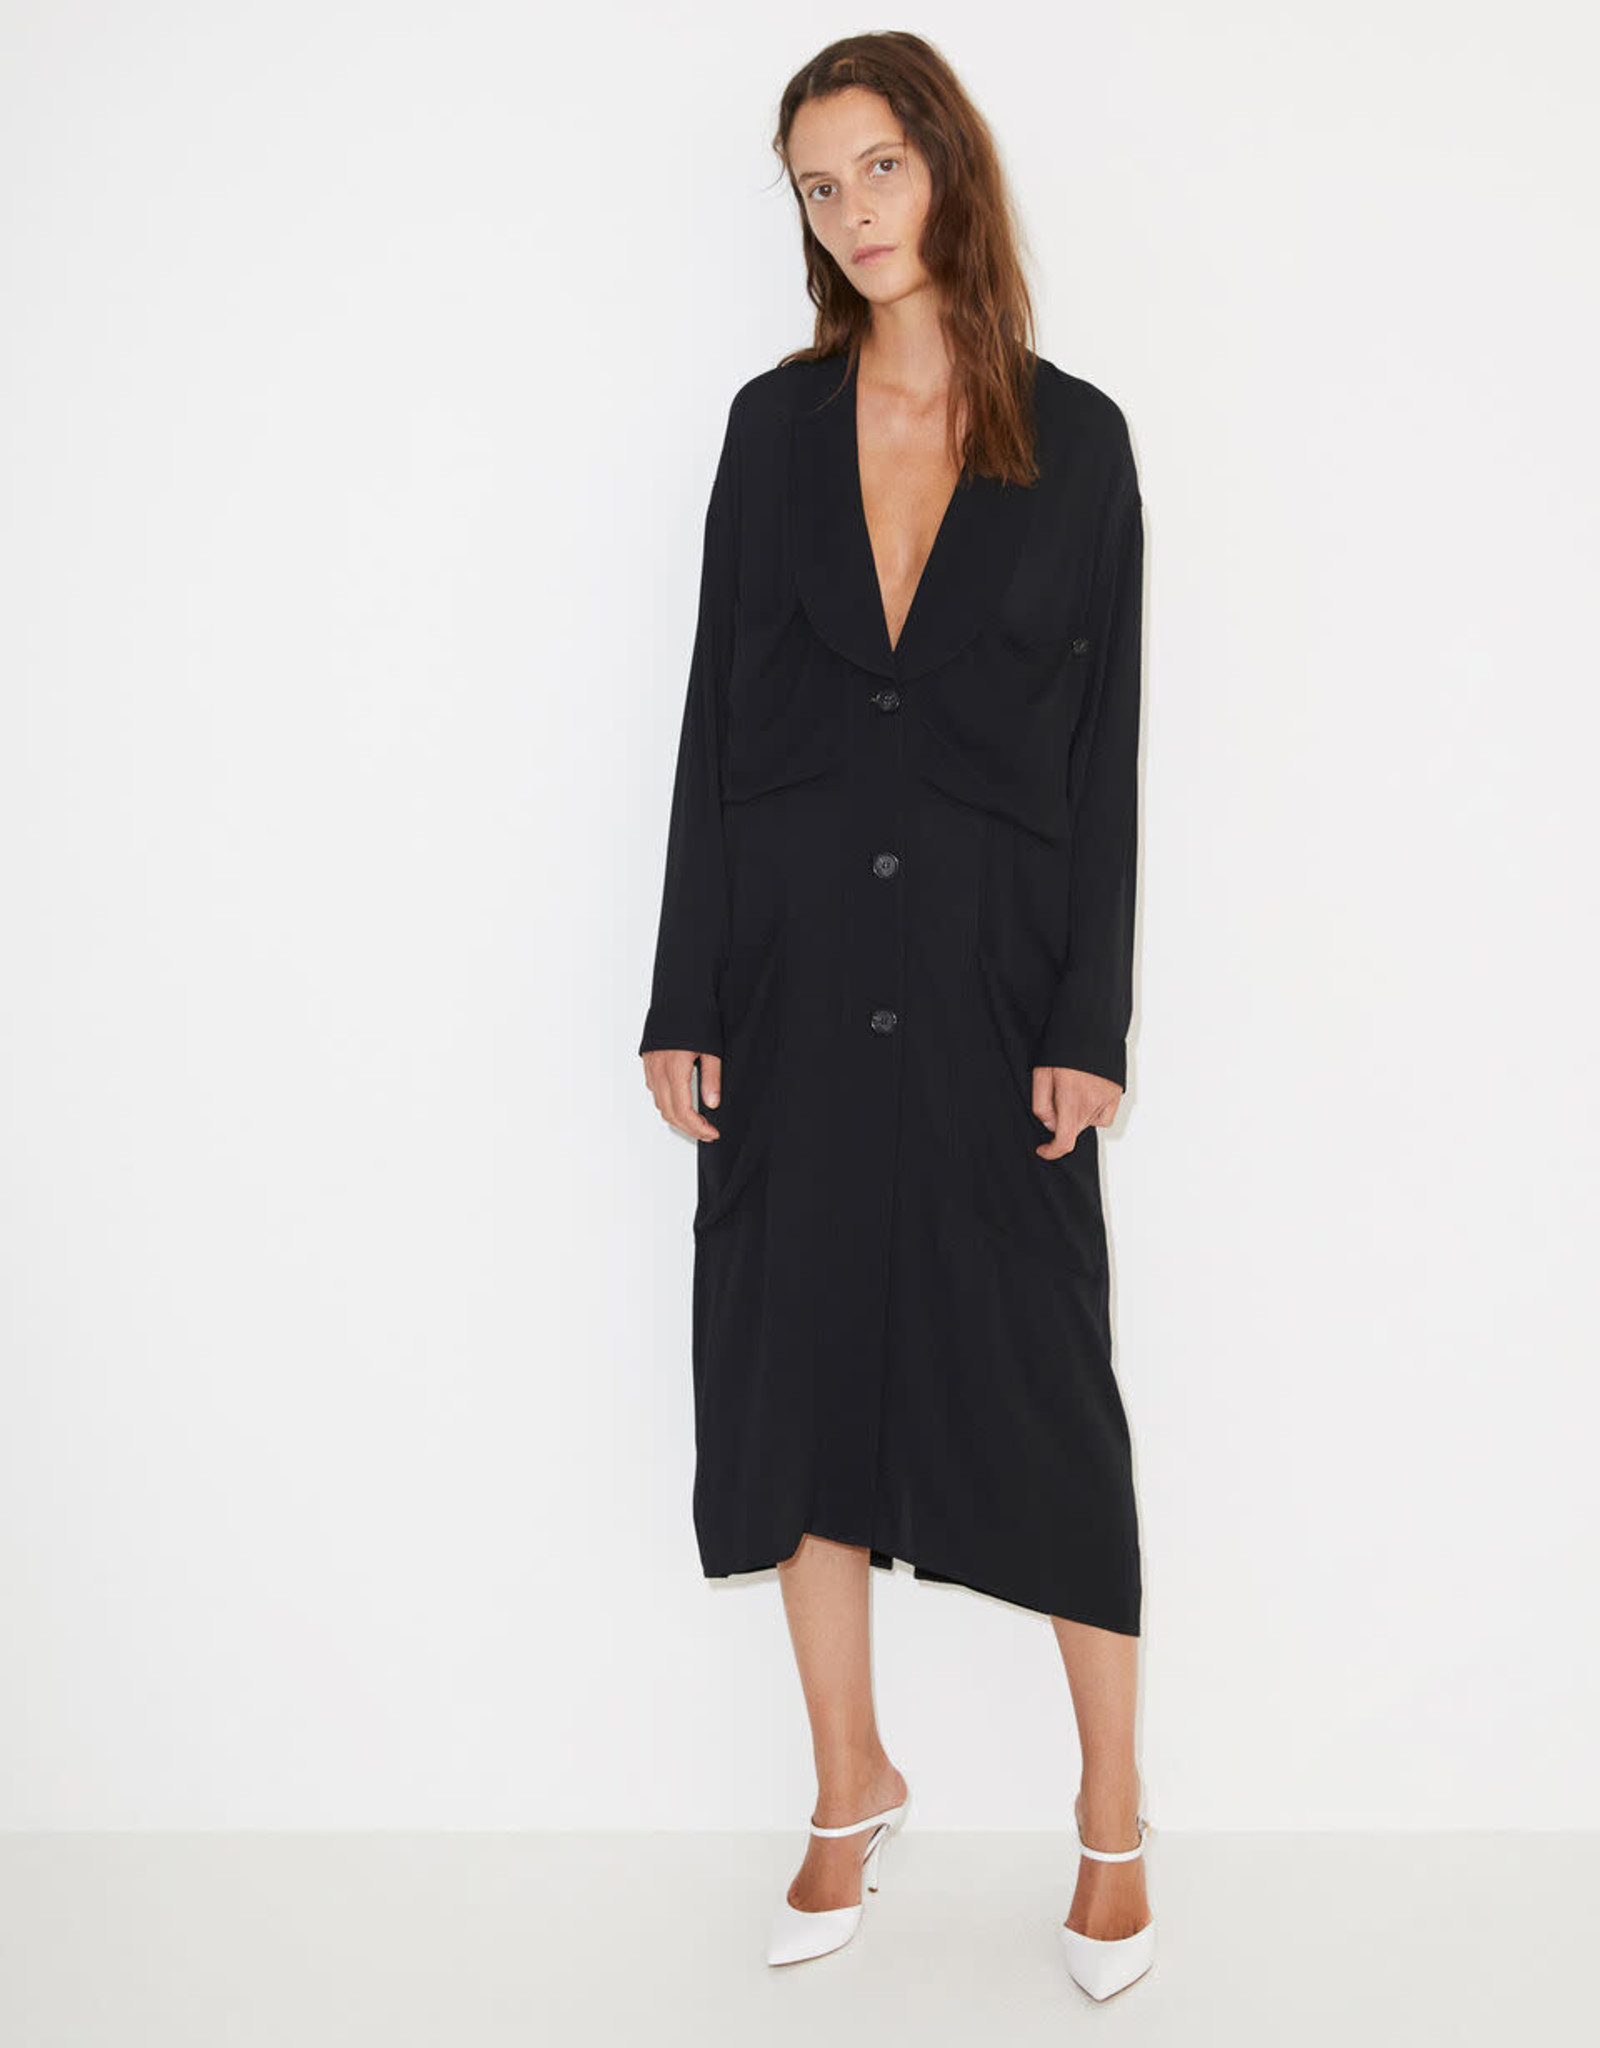 MALENE BIRGER - Encelia Dress